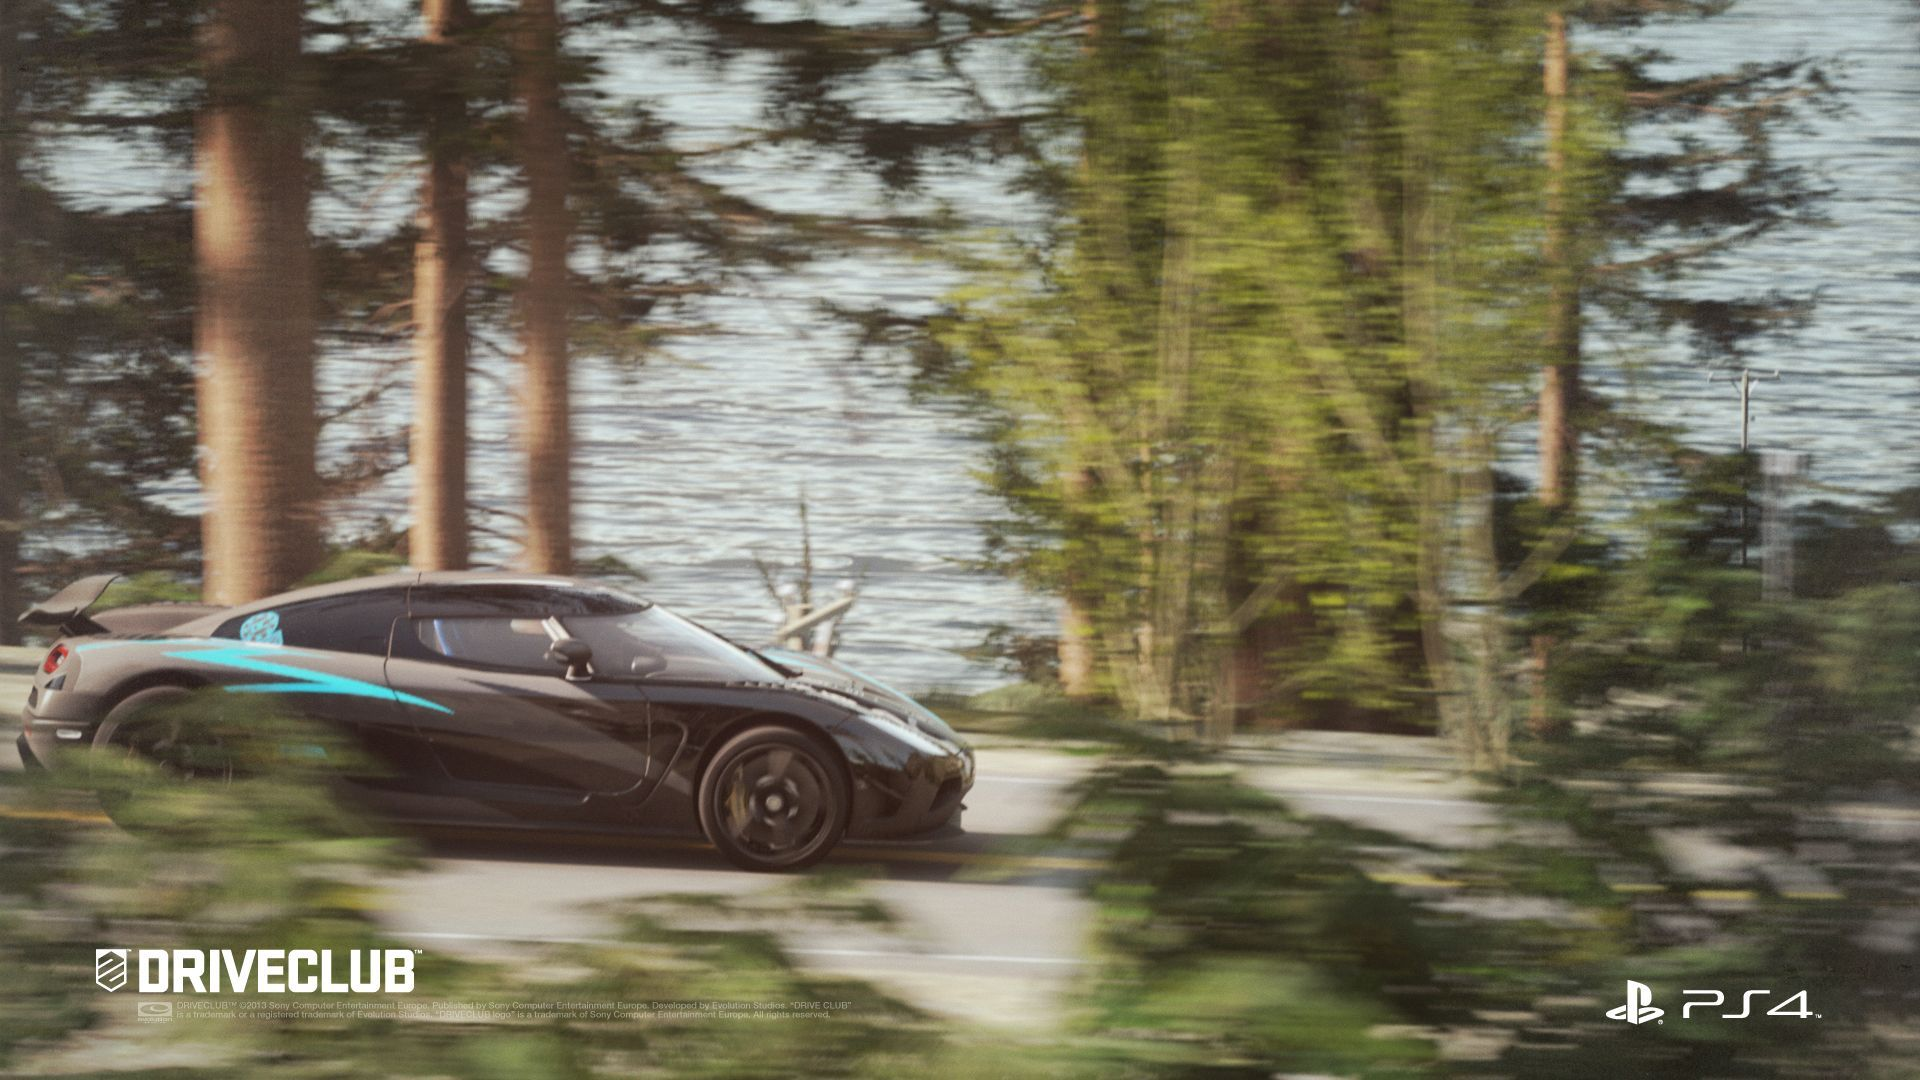 DriveClub (PS4) - 11